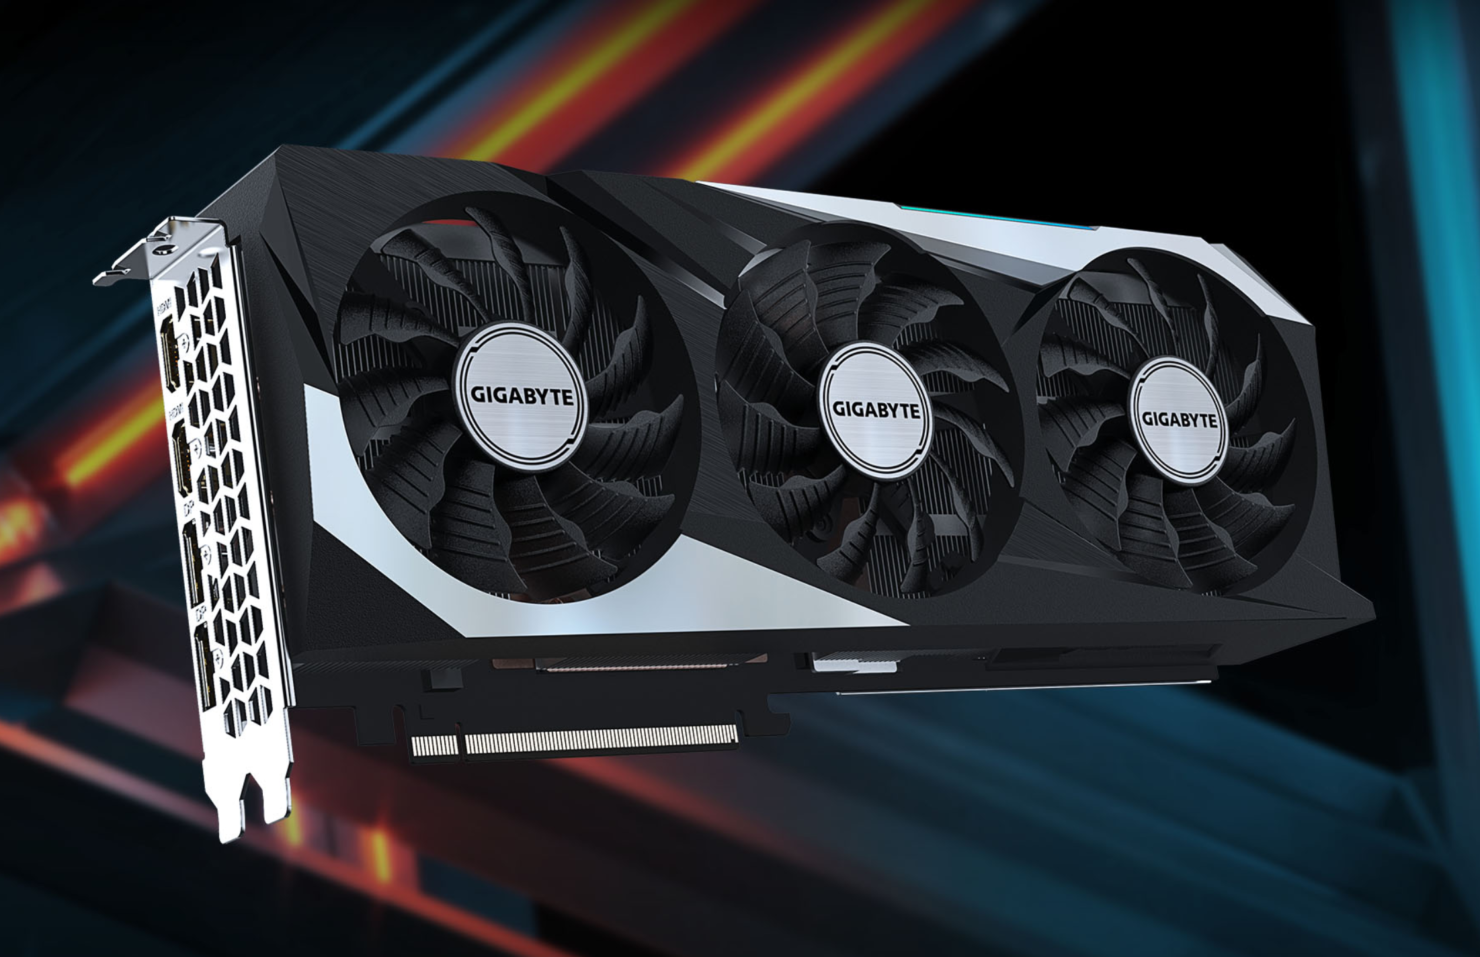 gigabyte-unveils-radeon-rx-6900-xt-gaming-oc-graphics-card-–-triple-slot,-triple-fan,-triple-8-pin-power-design-with-factory-overclock